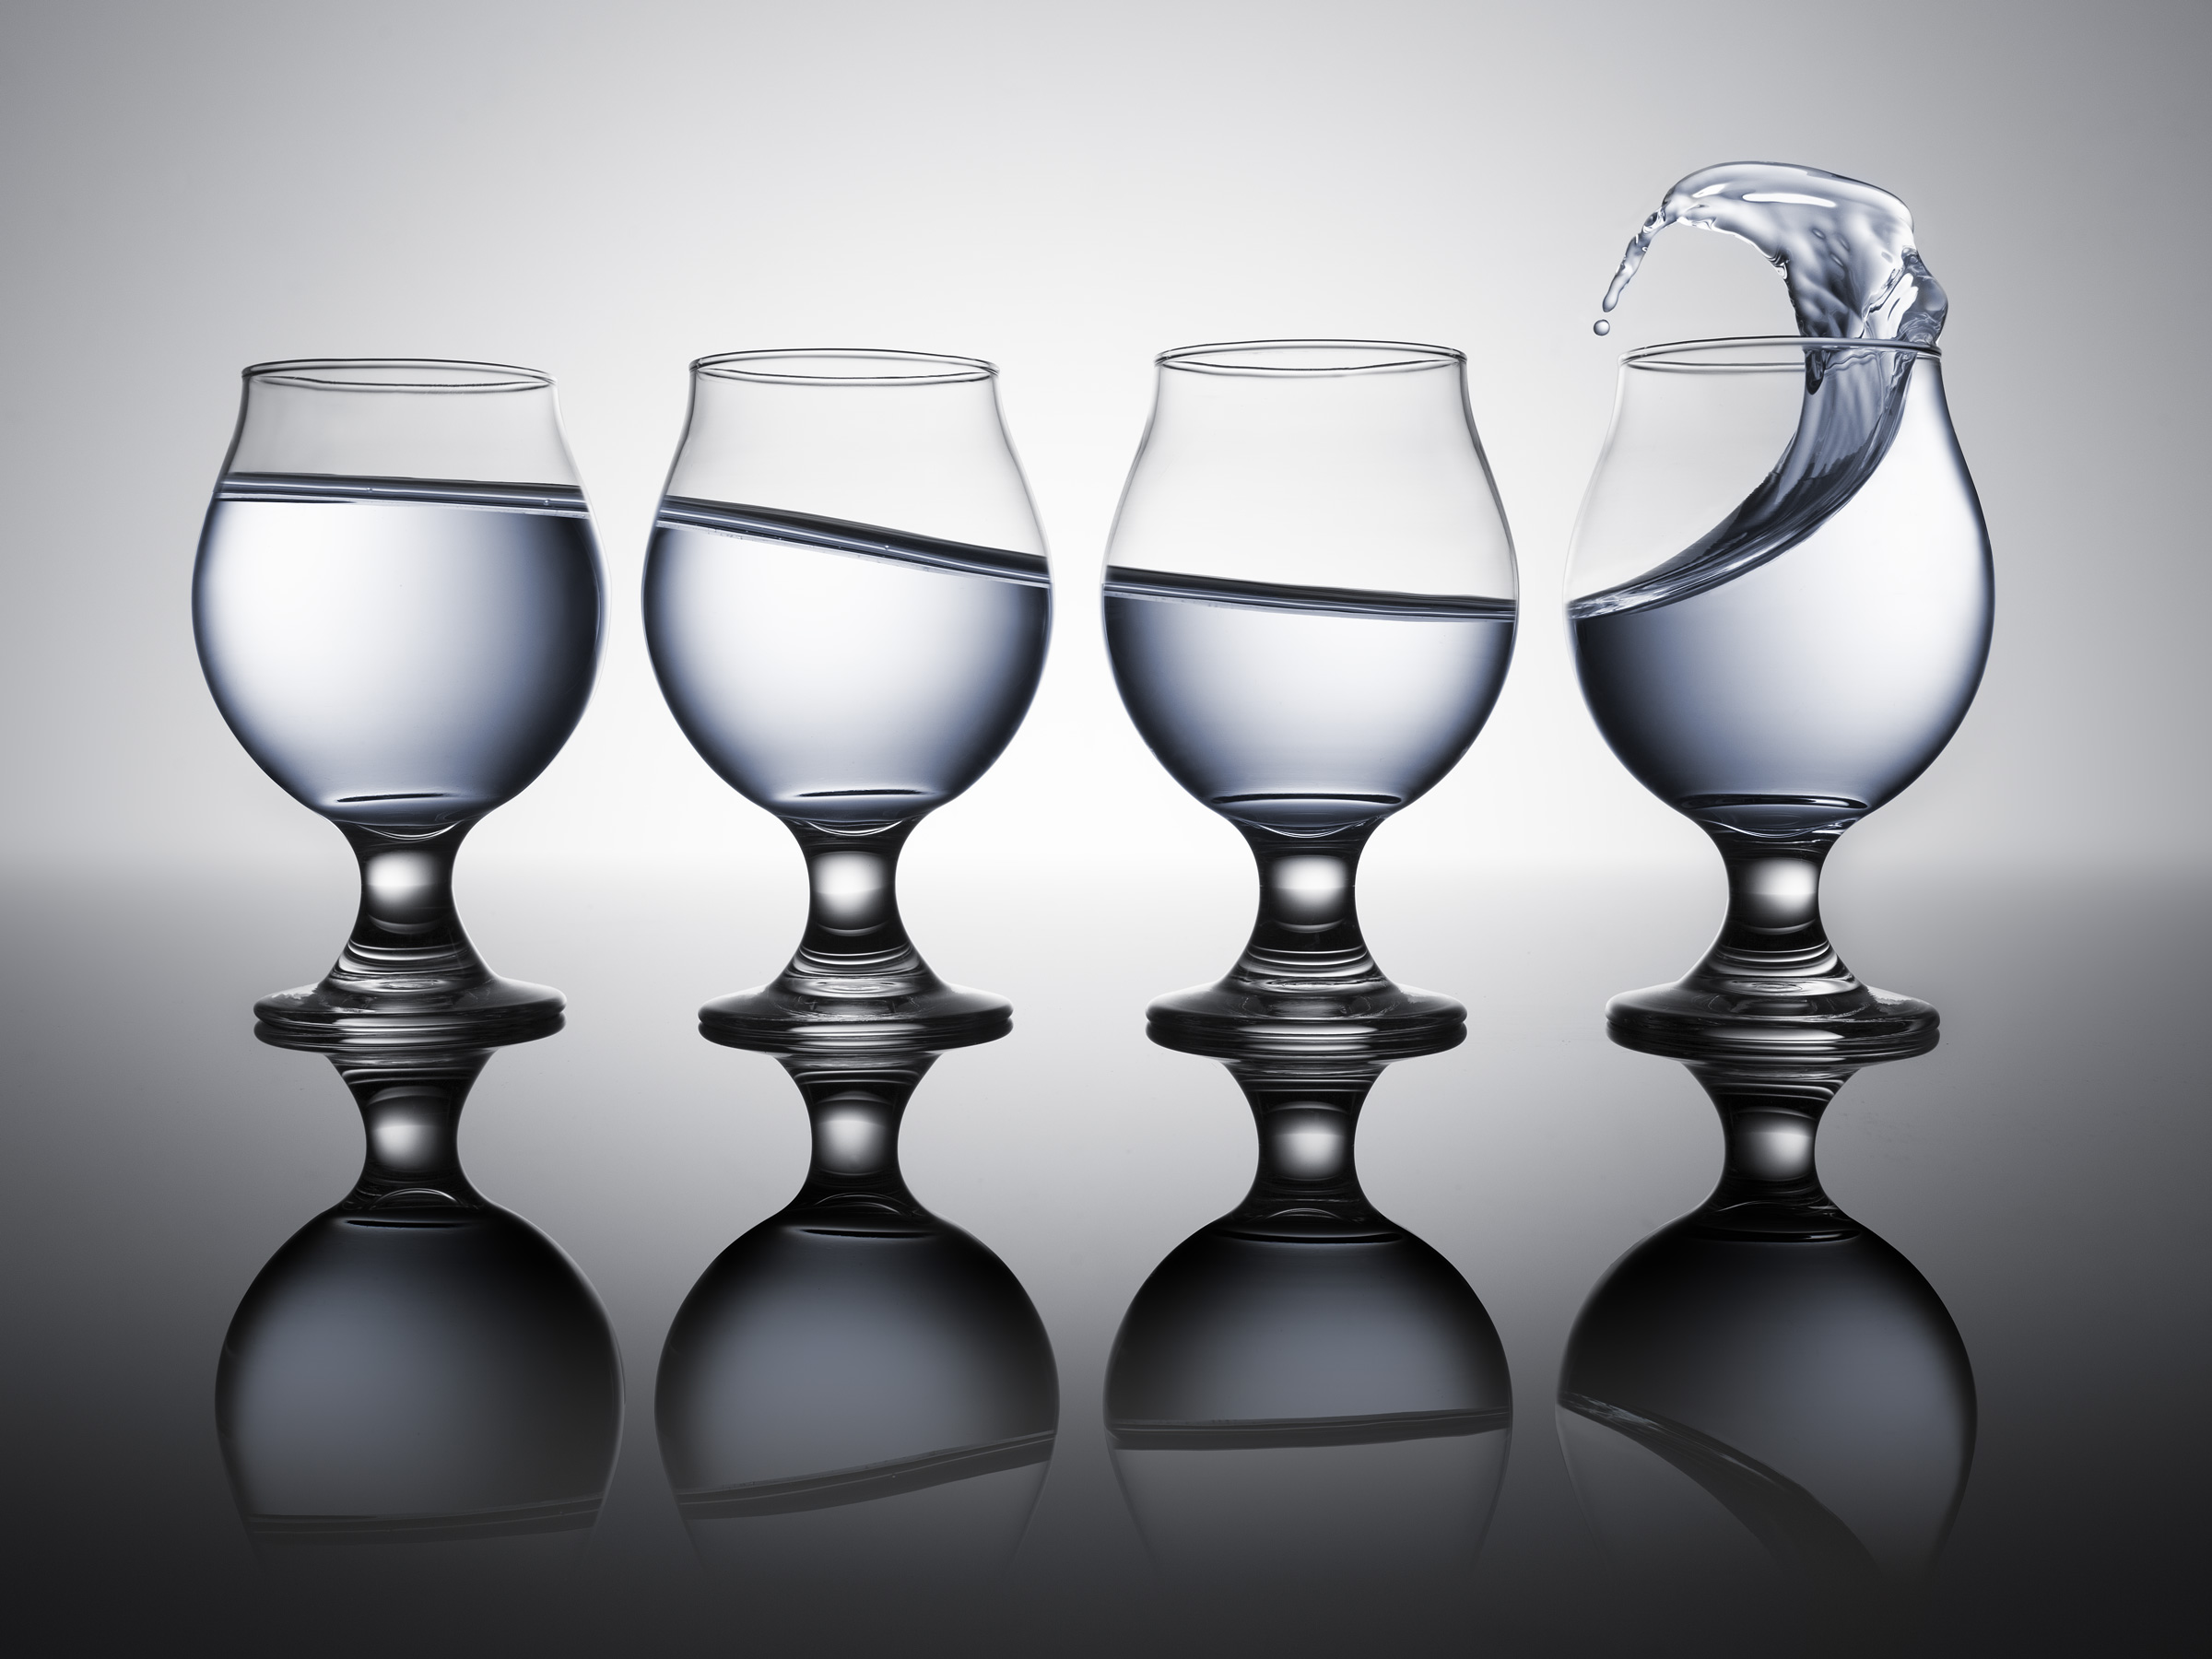 4glasses_final_4x3crop